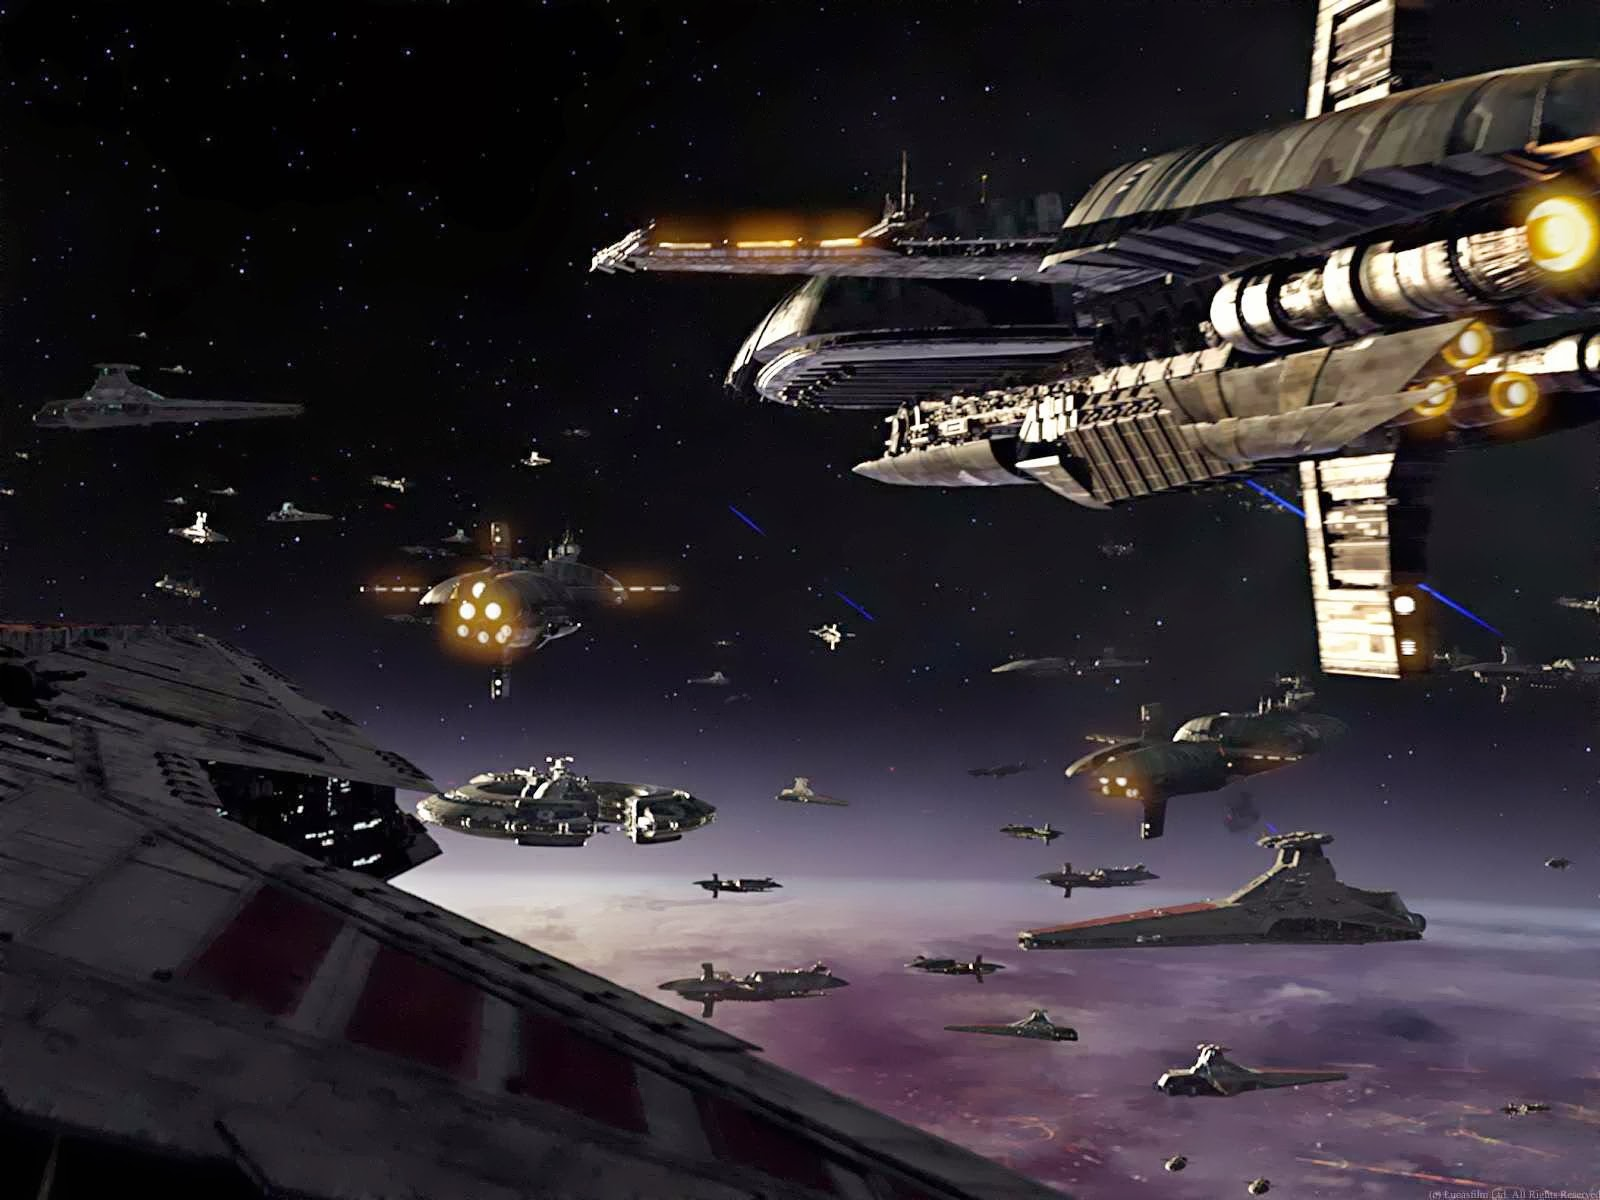 Space Battle Wallpaper Space Battle Wallpaper Space Wallpaper